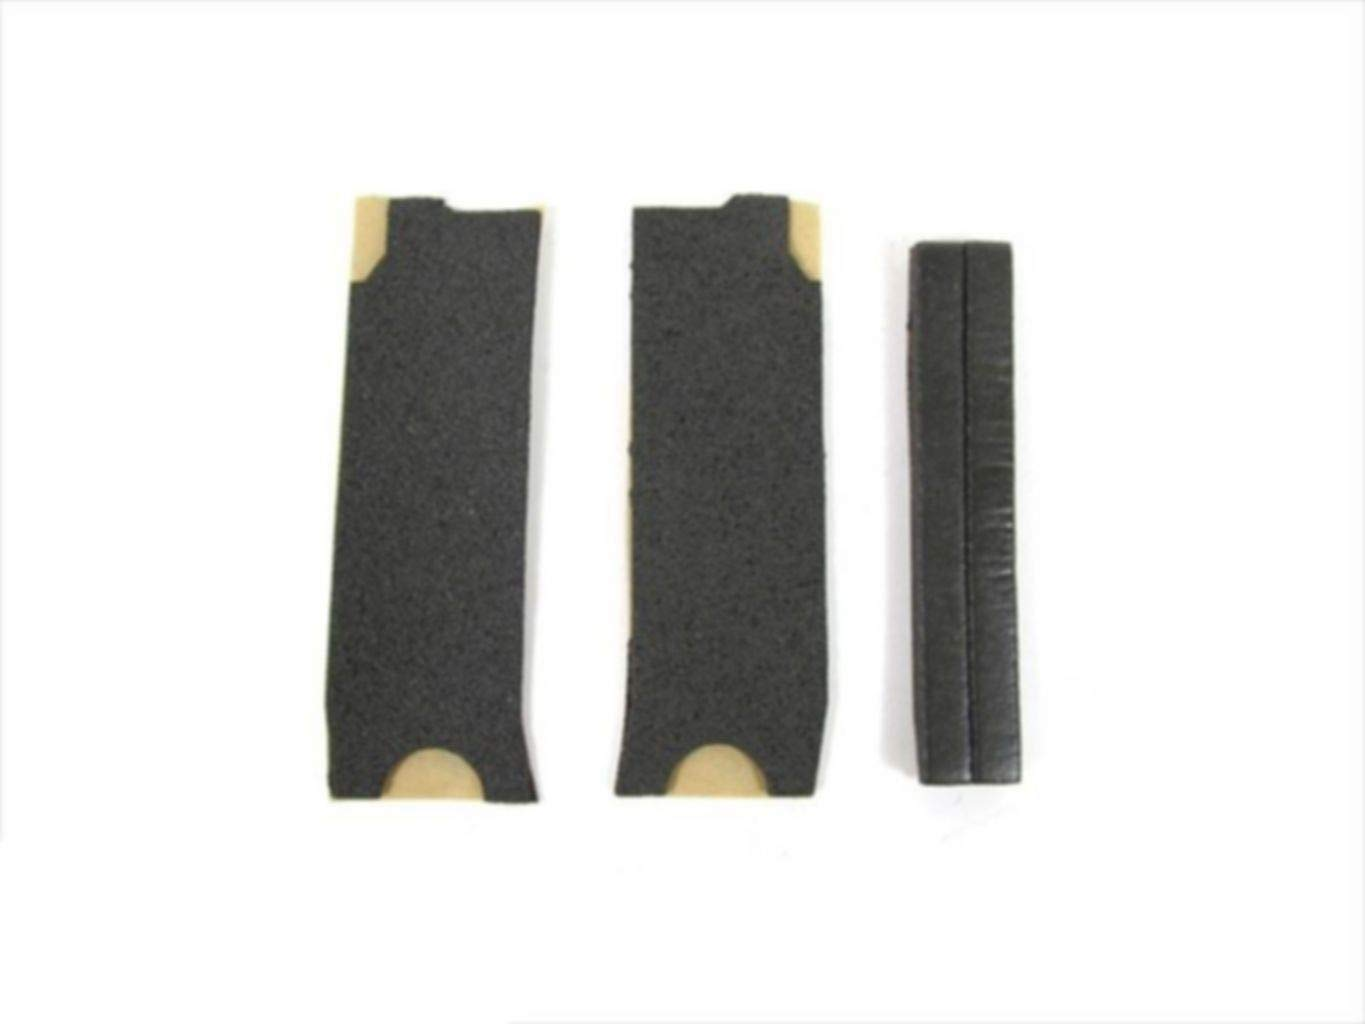 Quality 10-17 JЕЕР WRАNGLЕR Soft Max 77% OFF Dealing full price reduction TOP Tape O KIT Header Foam